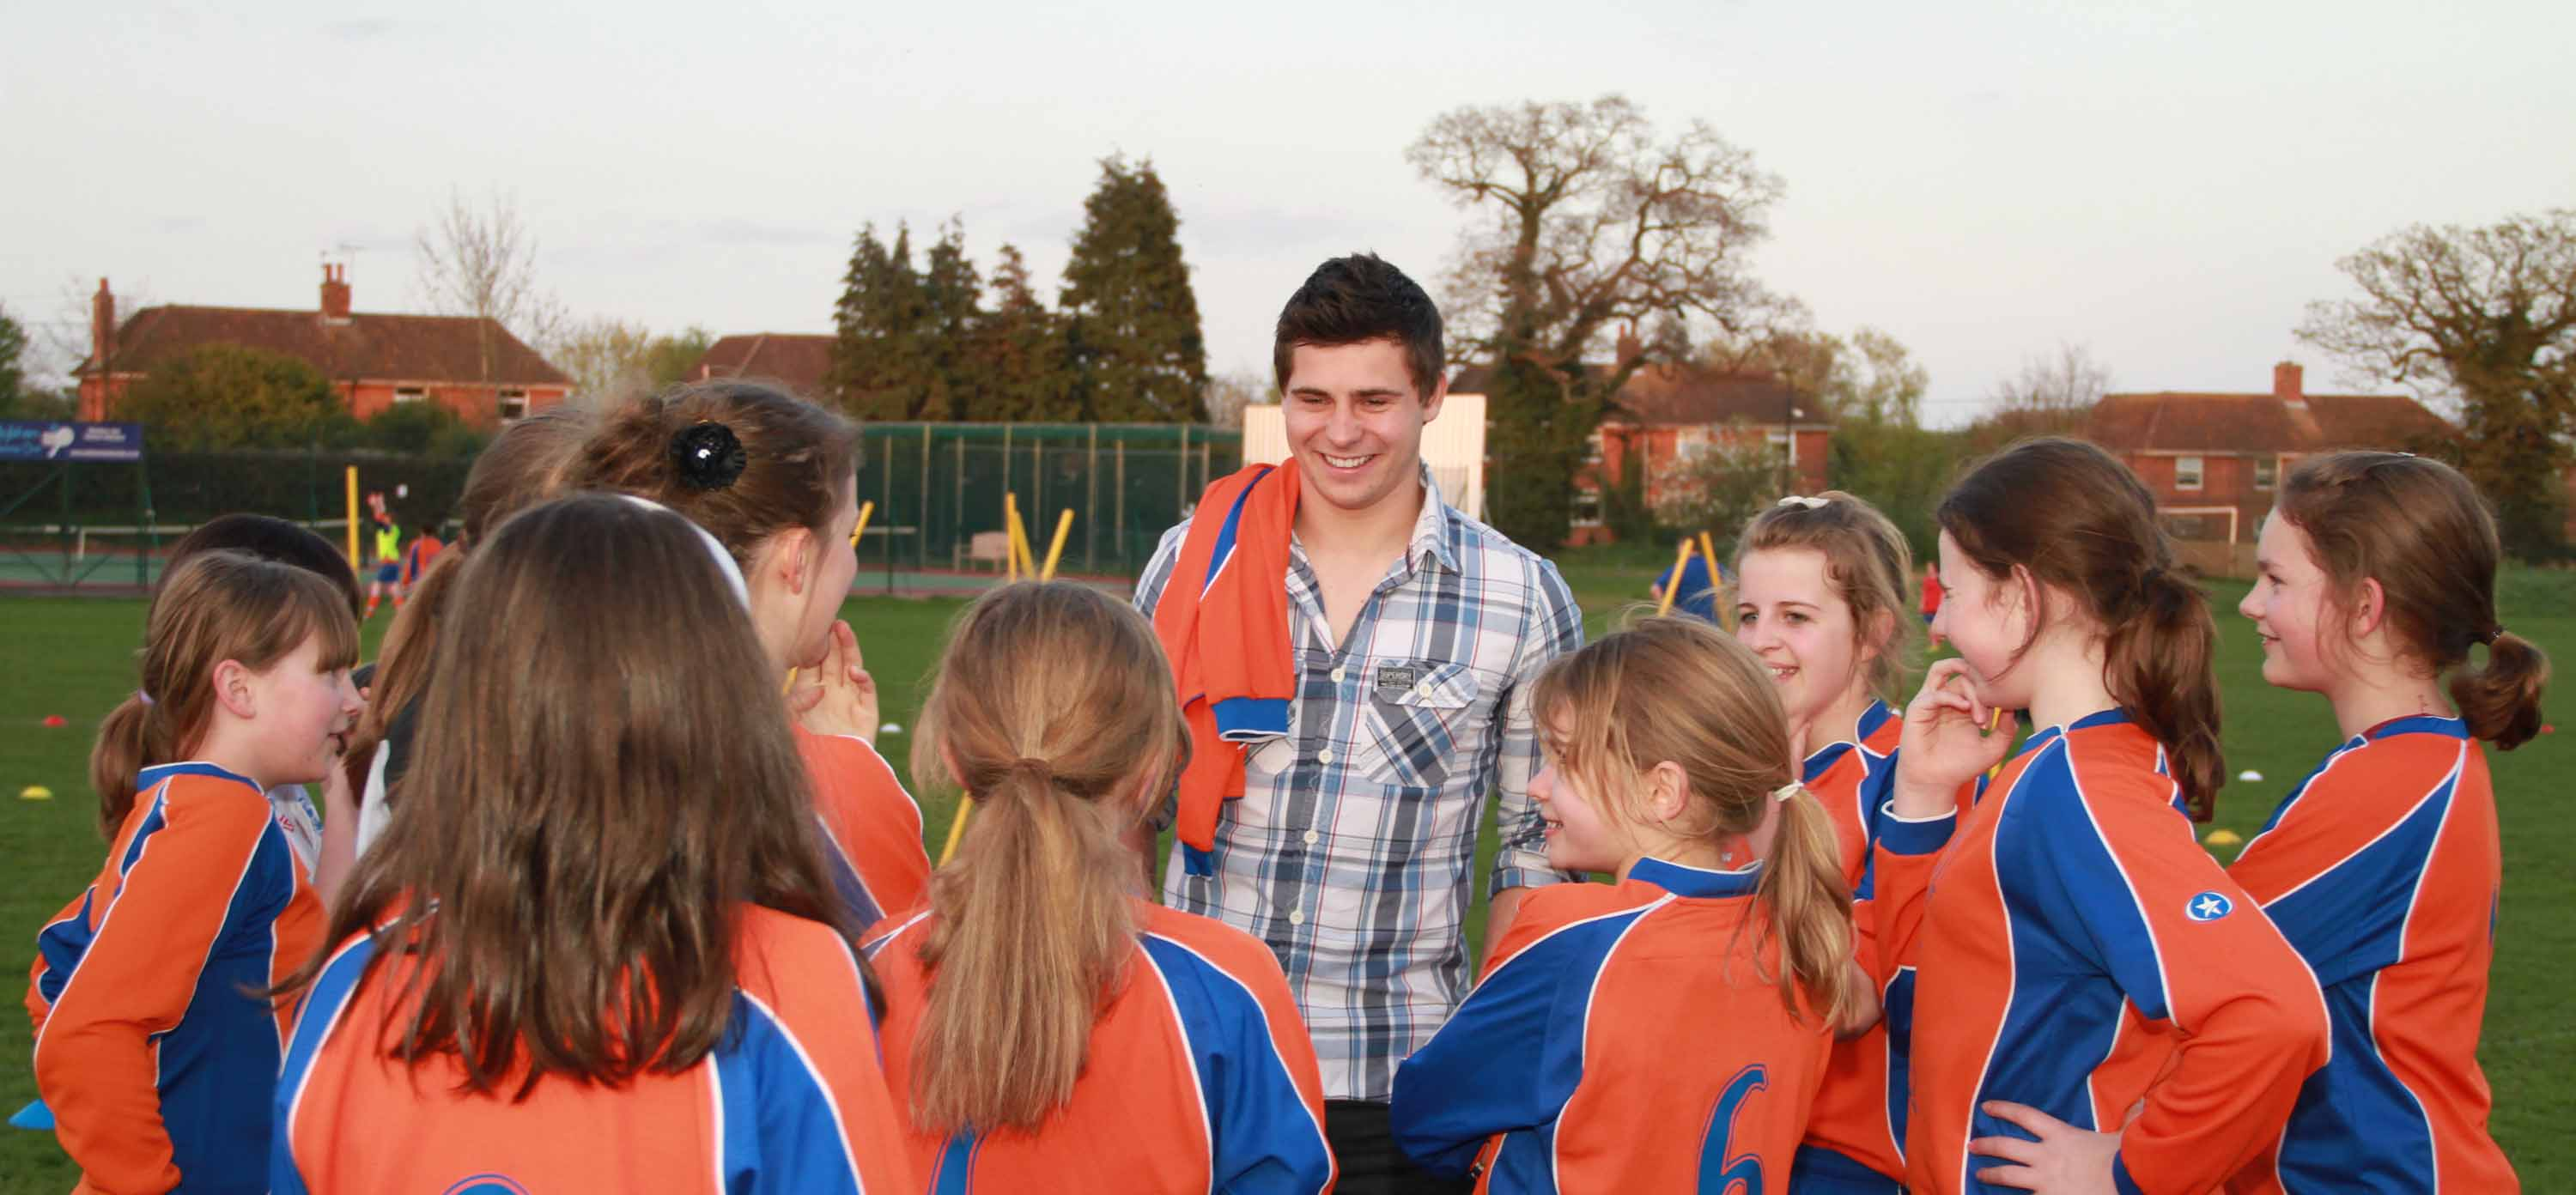 England rugby star Ben Youngs